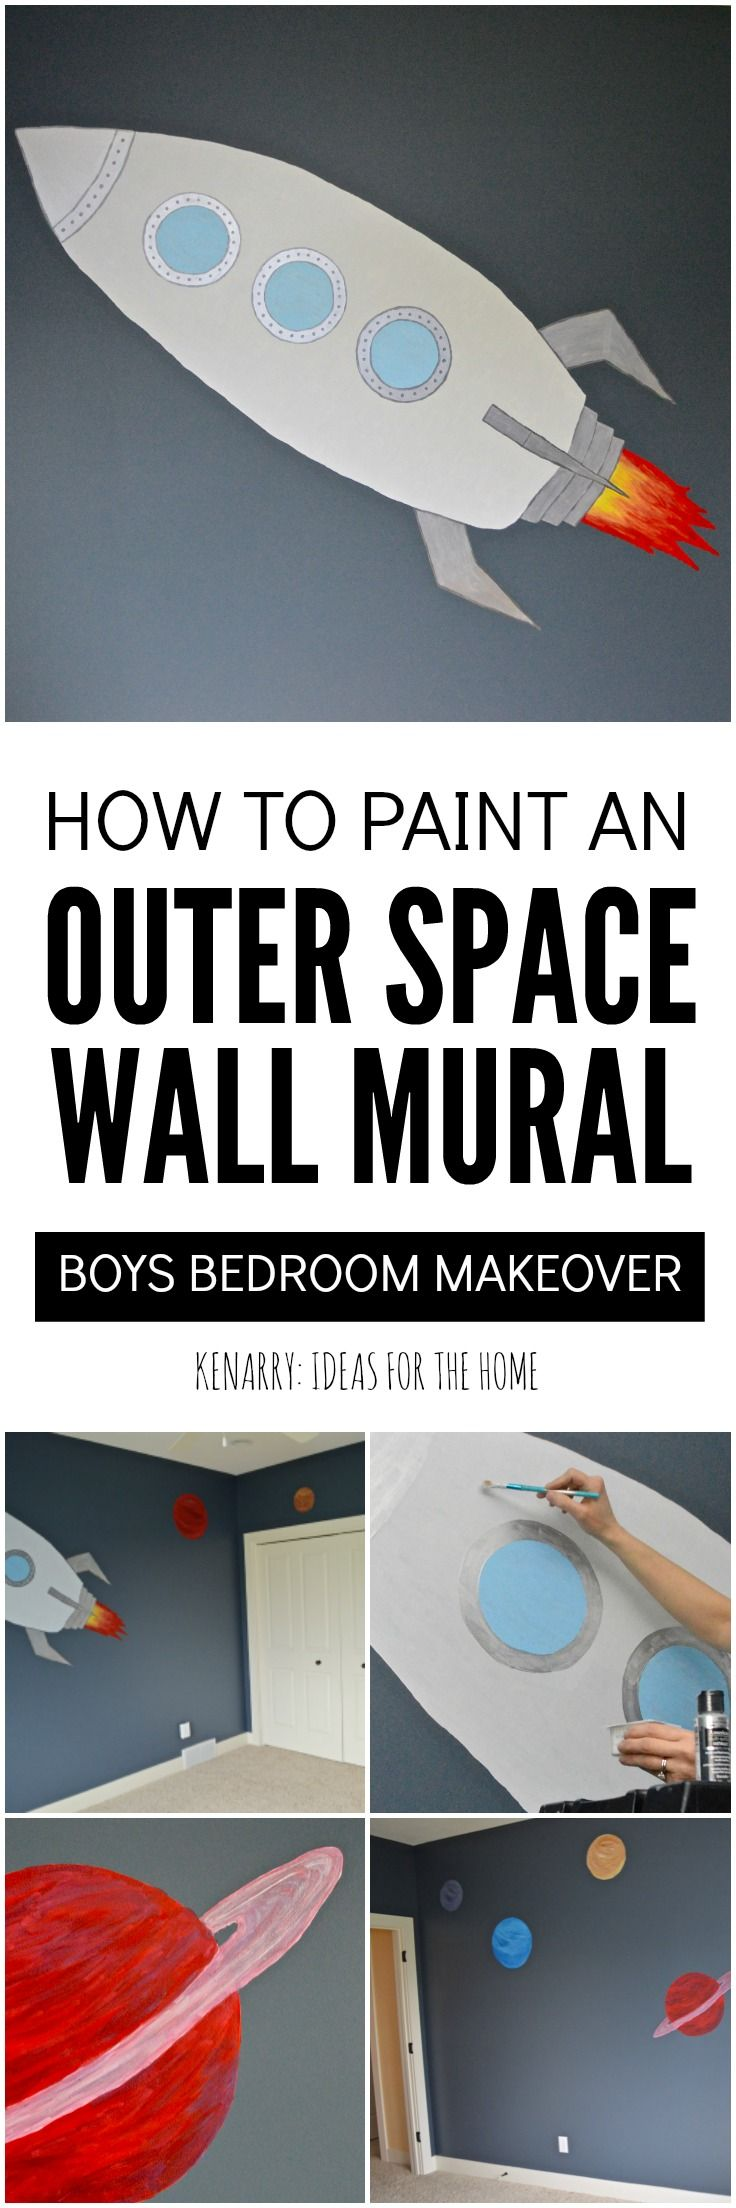 Outer Space Mural Tutorial for Boys Bedroom is part of Big bedroom For Boys - Paint an outer space mural for a bedroom using this DIY tutorial and DecoArt paint  It's easy to create a rocket and planets that are out of this world!